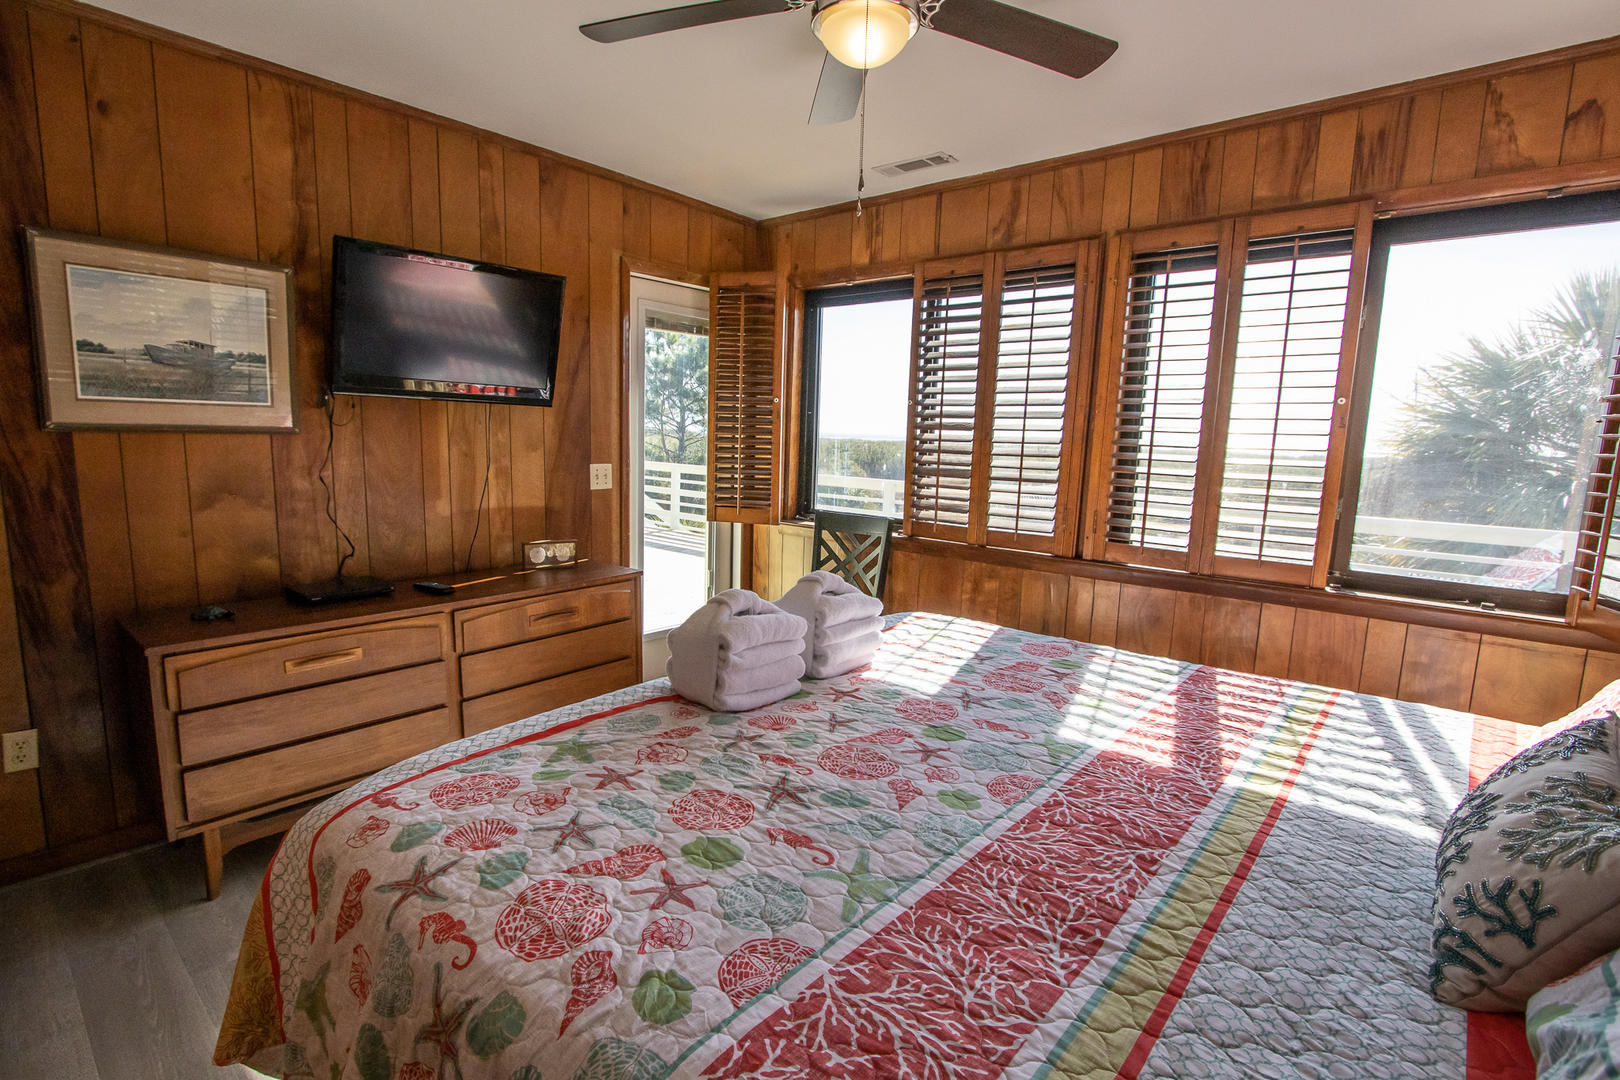 Master, TV w/ DVD player, Access to back deck